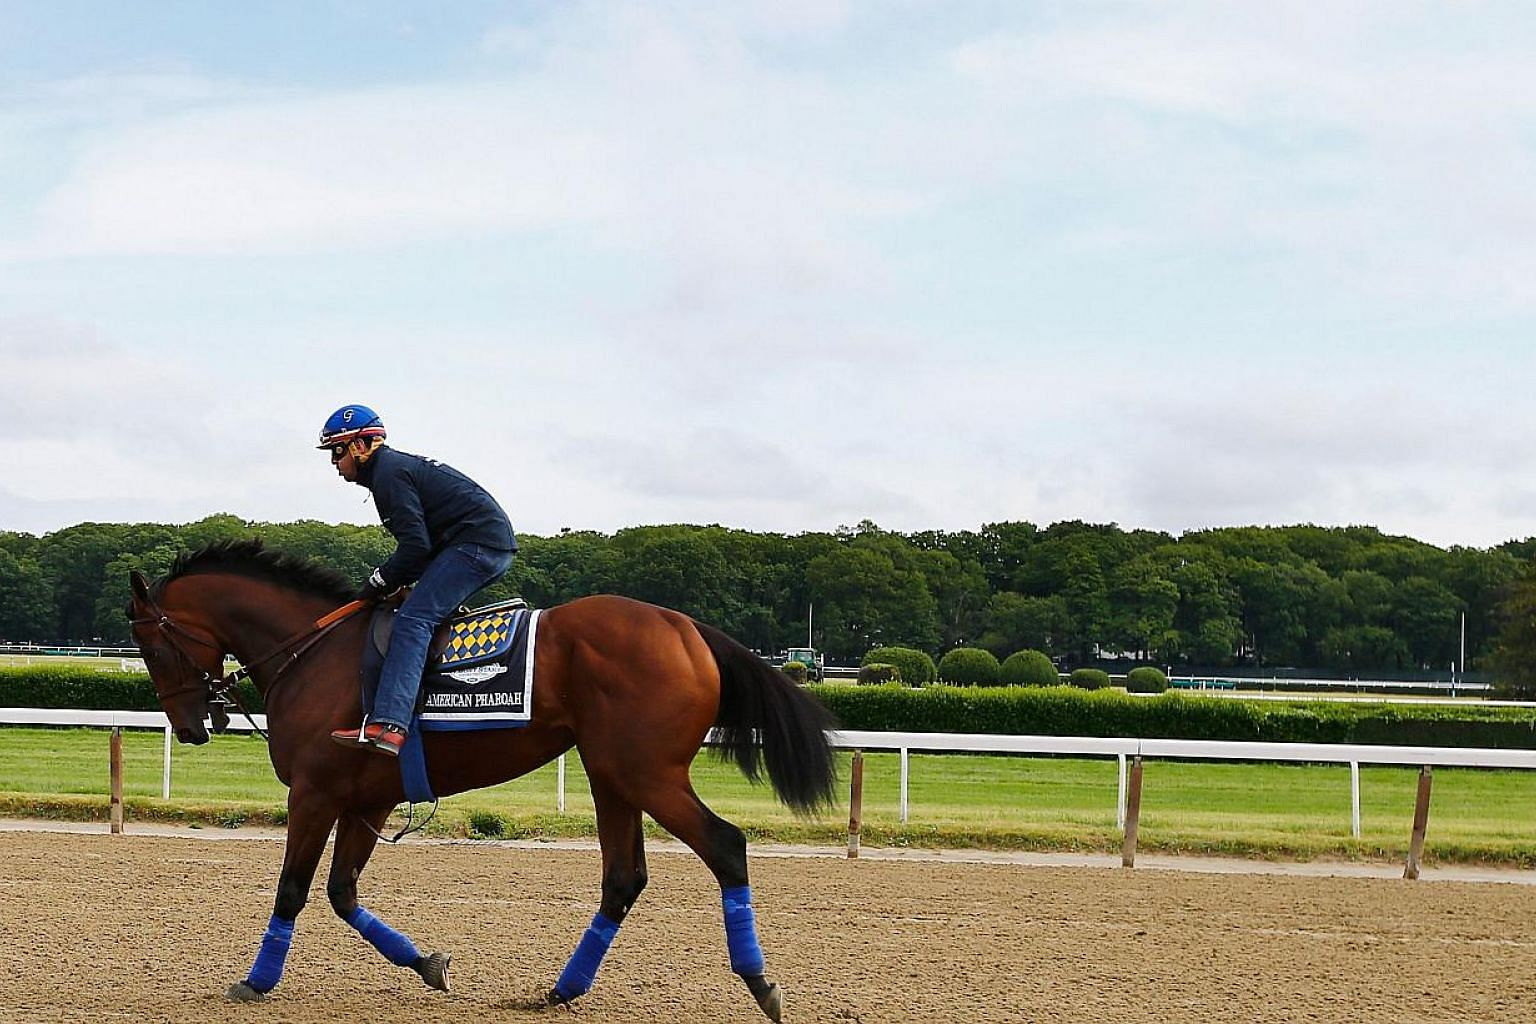 American Pharoah during training at Belmont Park on June 3, 2015, in Elmont, New York. -- PHOTO: AFP